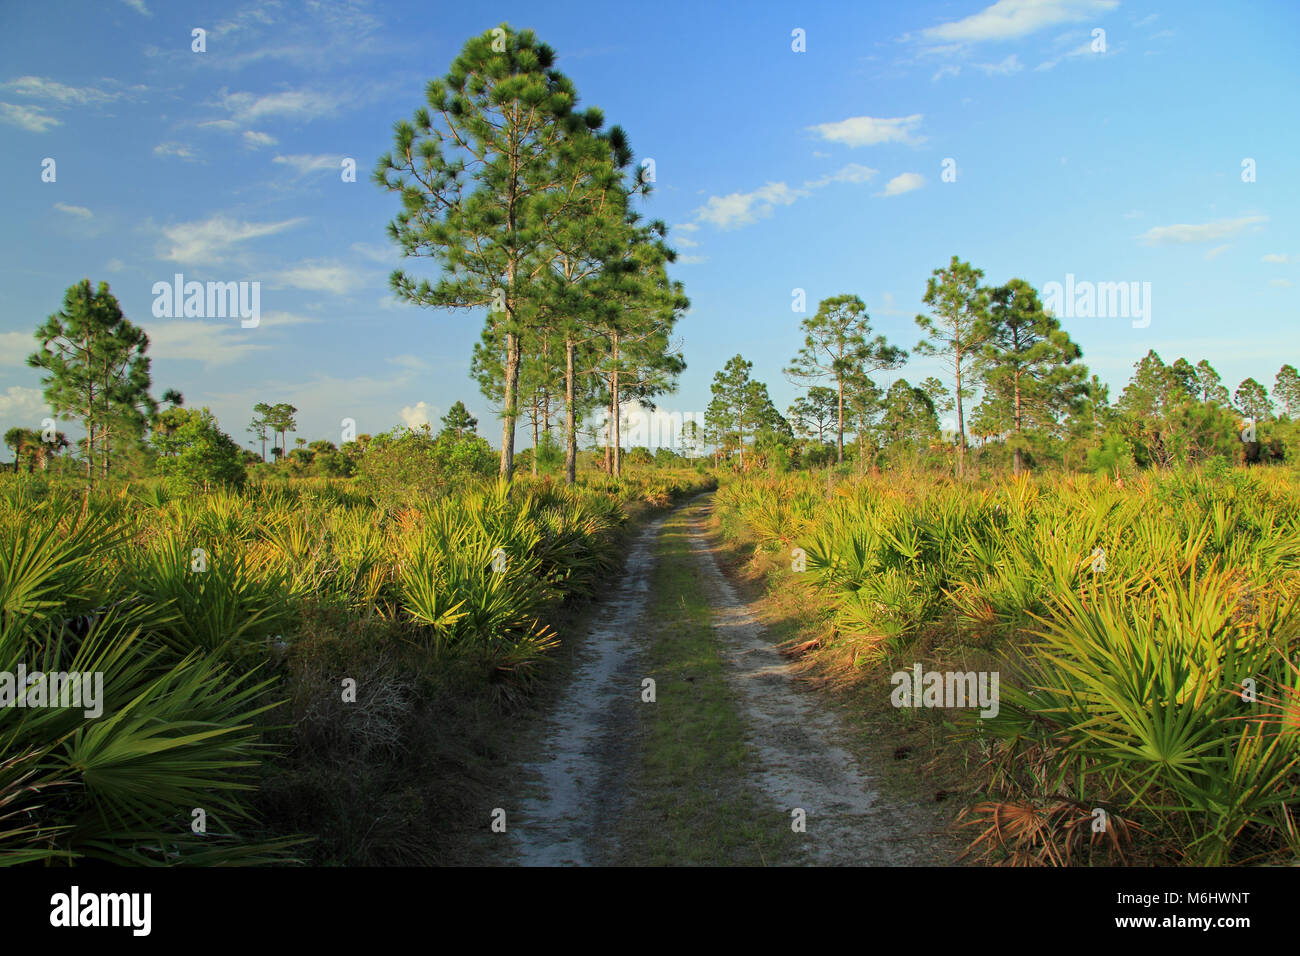 Scenic Subtropical Landscape in Big Cypress National Preserve in the Florida Everglades Stock Photo